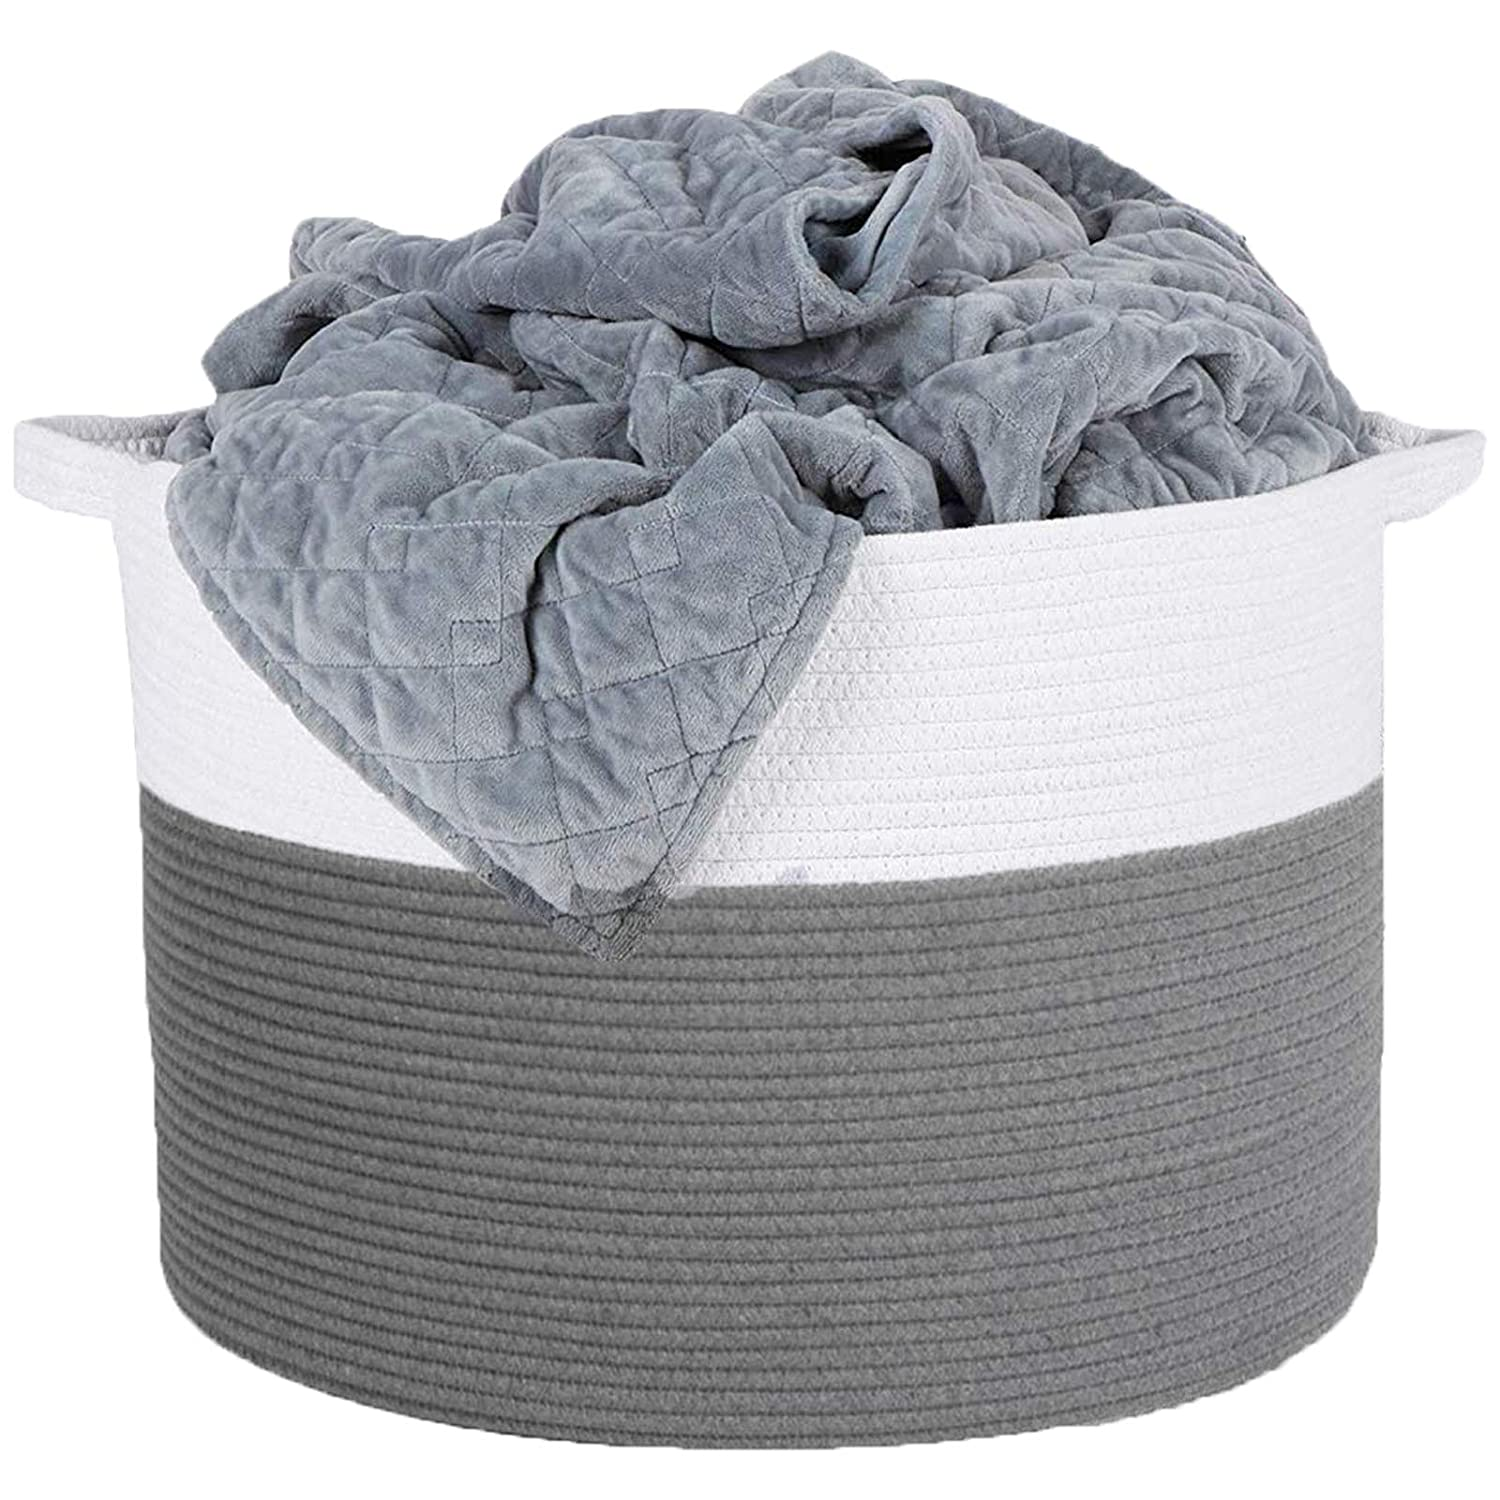 Cotton Rope Basket,Basket for Towels, Woven Storage Basket,Baby Laundry Toys Basket, Decorative Basket Hamper Gray & White 15'' × 13'' for Storage, Laundry, Toys, Clothes, Blankets, Towel, Pillows